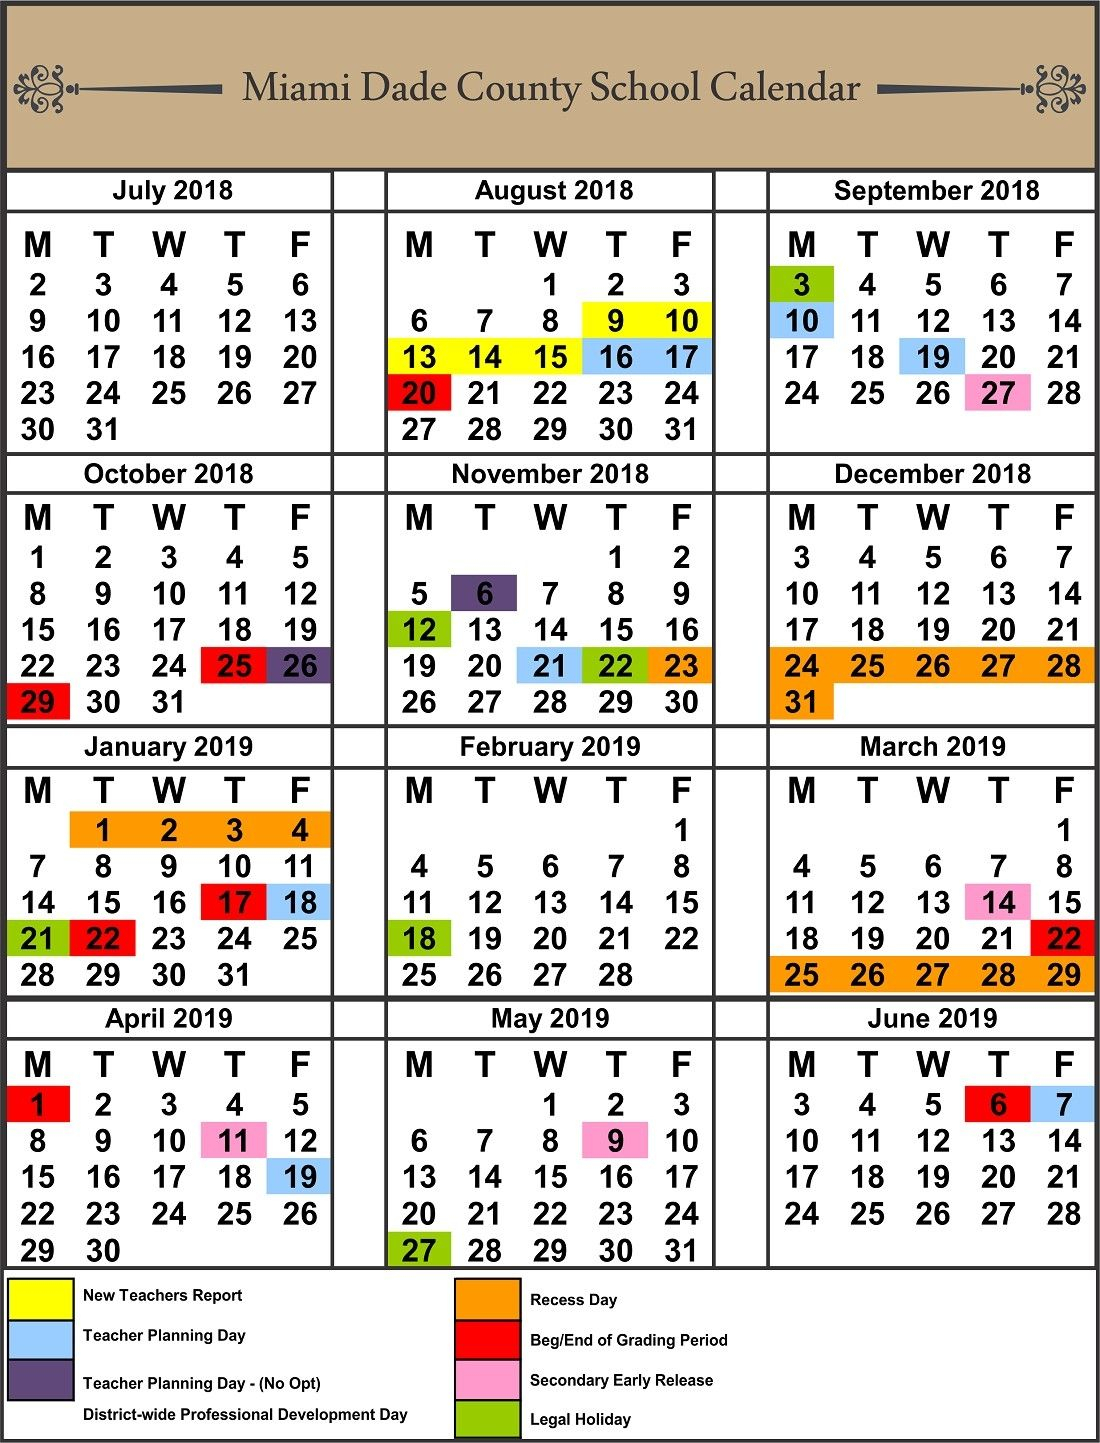 Exceptional School Calendar Leon County In 2020 | School with regard to Pb County School Calendar